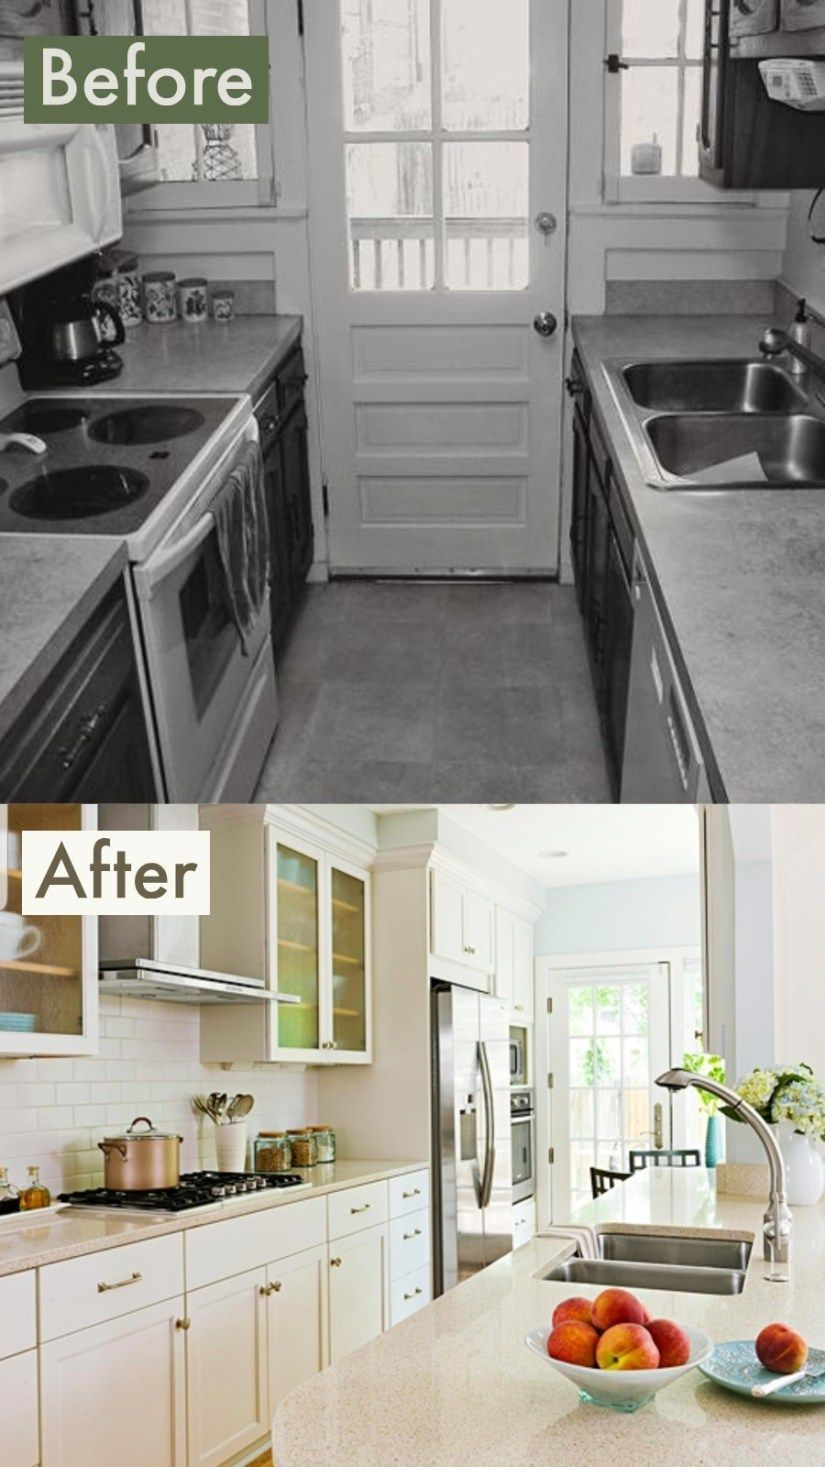 Galley Kitchen Remodel Before And After Ideas 2019 Trends ...